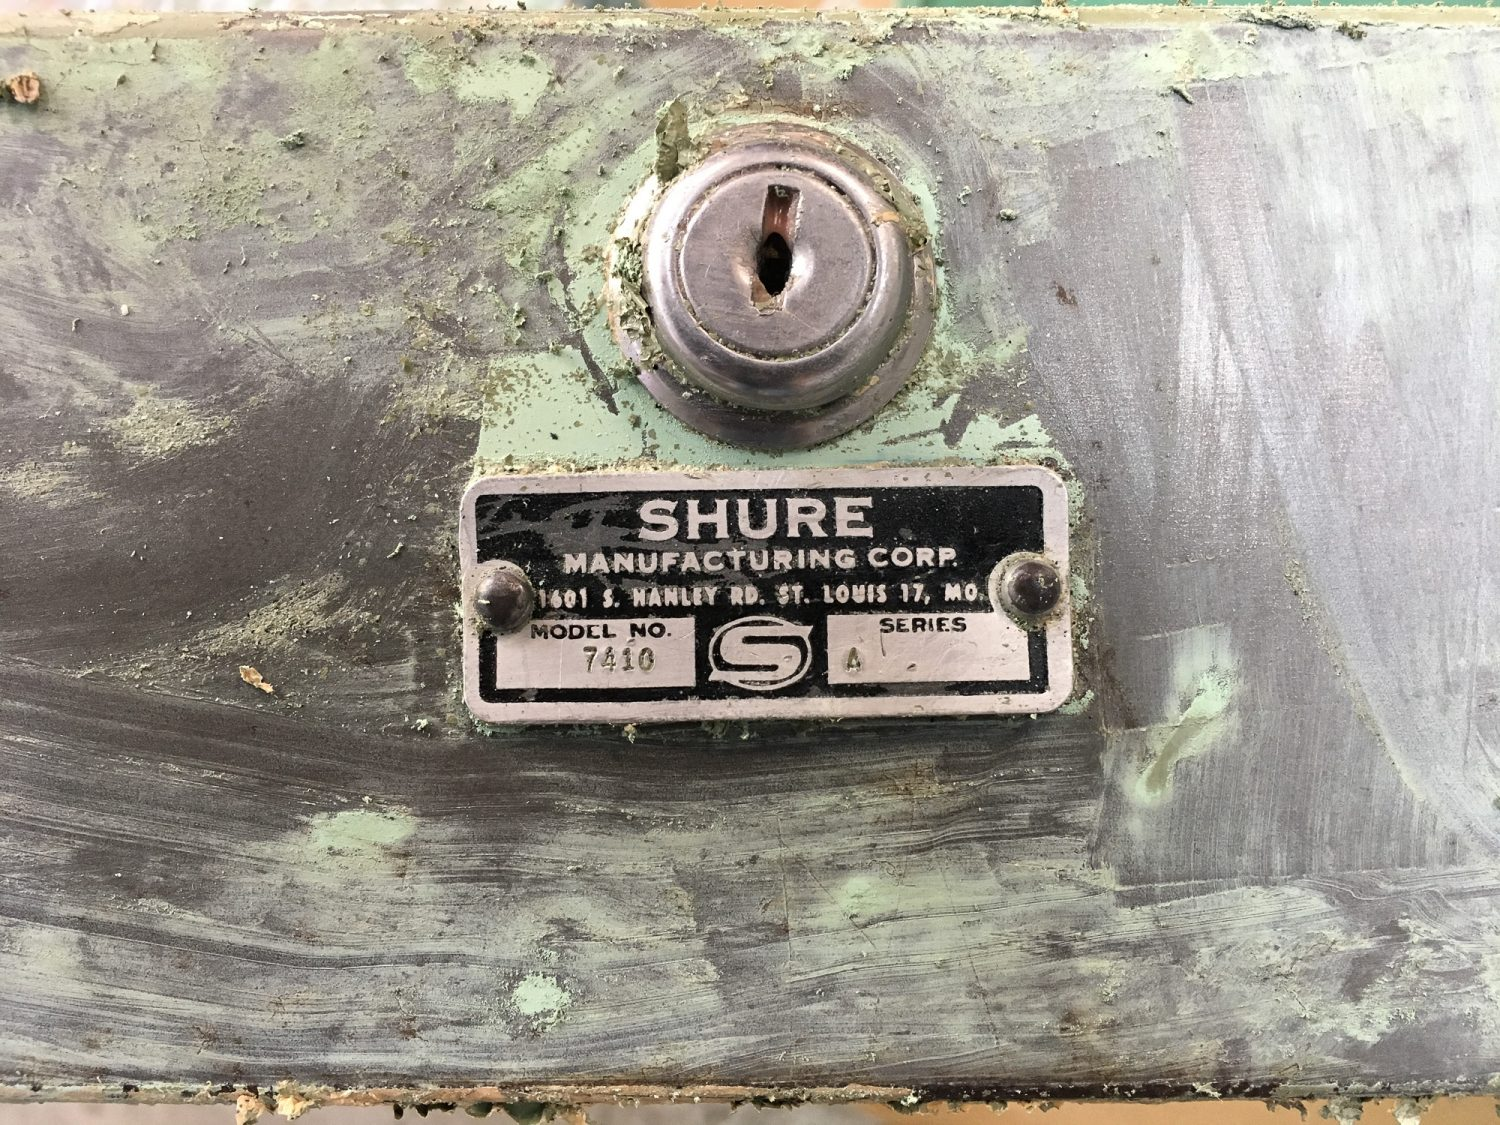 mid century steel tanker desk, displaying the manufacturers tag, Shure Manufacturing Corp.